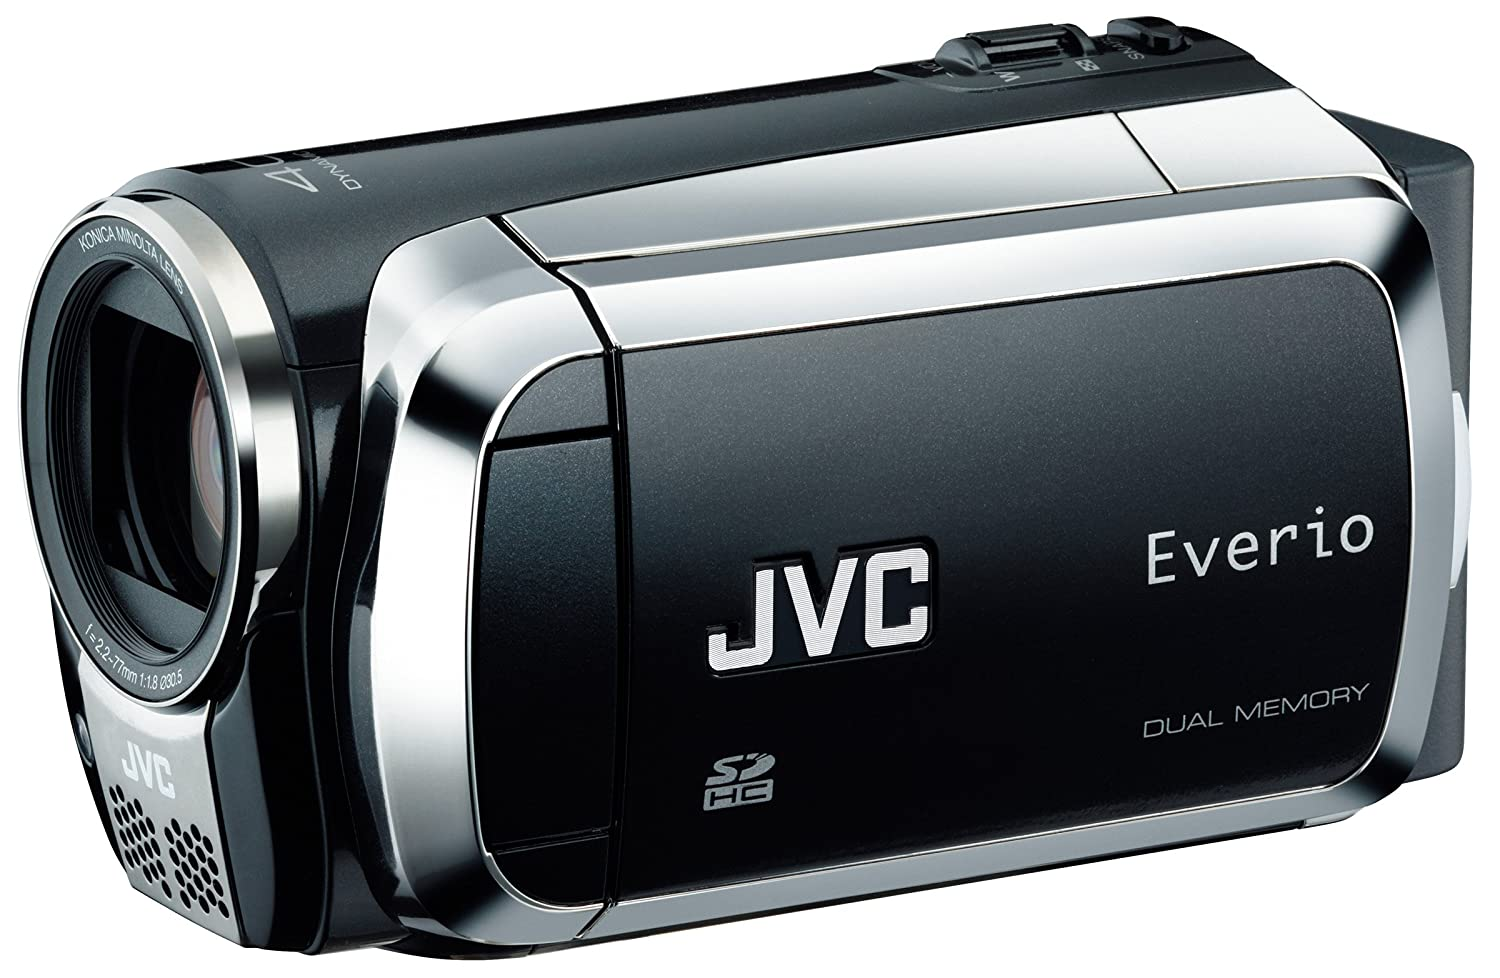 Amazon.com : JVC Home JVC Everio MS130 16GB Dual Flash Camcorder (Black)  (Discontinued by Manufacturer) : Jvc Dual Memory Everio Camcorder : Camera  & Photo